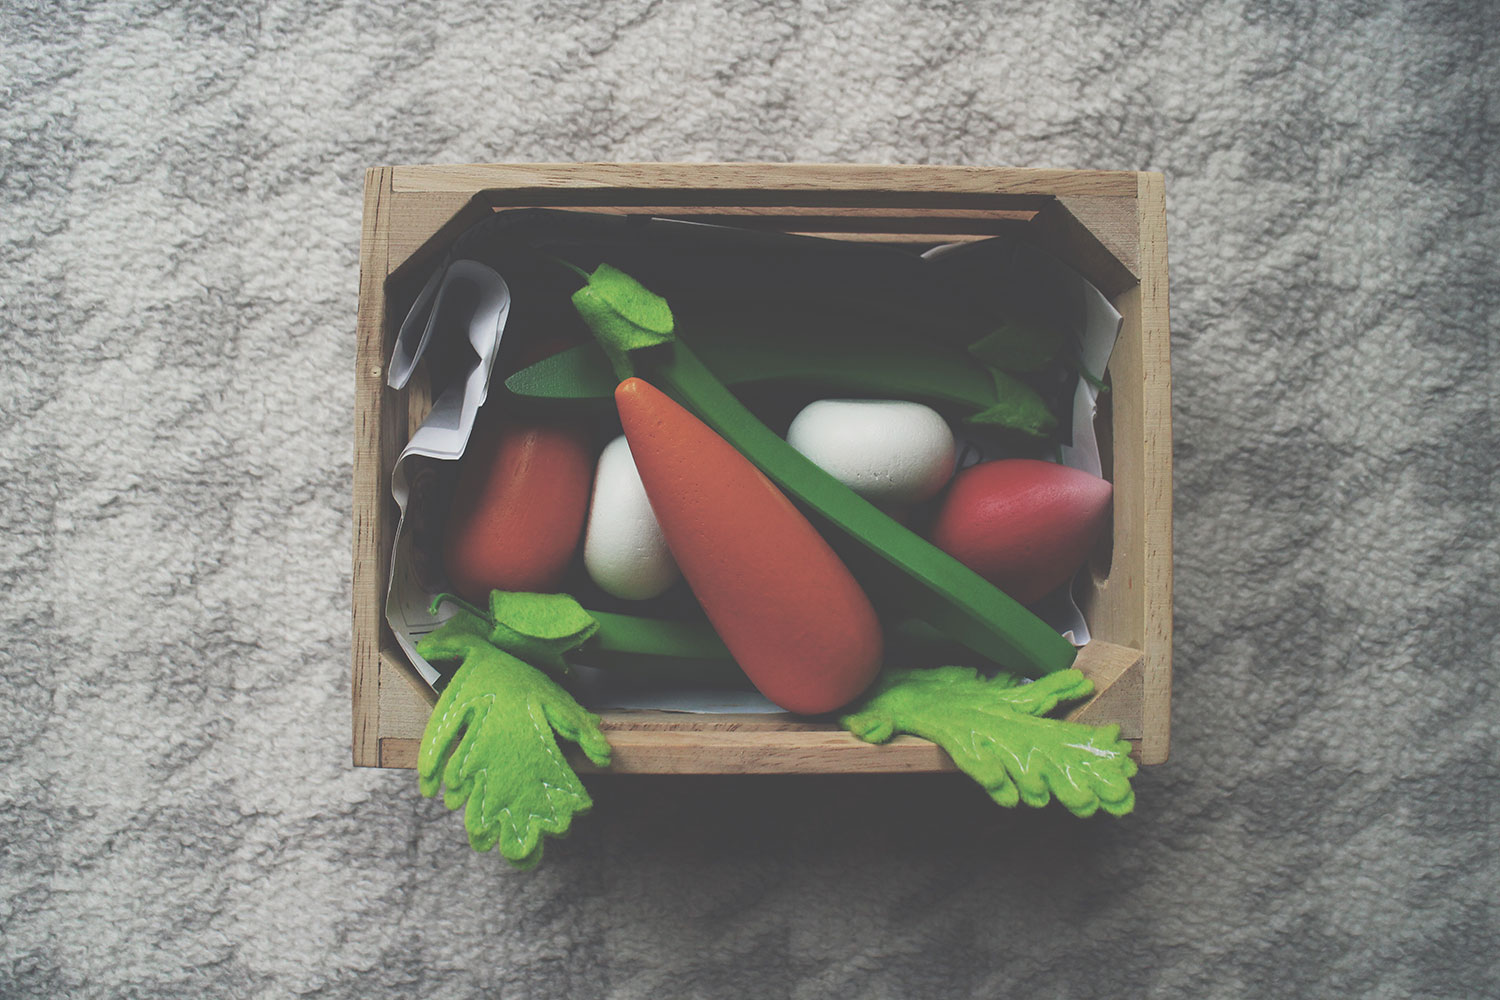 5 of The Best Wooden Toys for Toddlers - Le Toy Van harvest wooden vegetables in crate including carrots, radishes, for toy kitchen